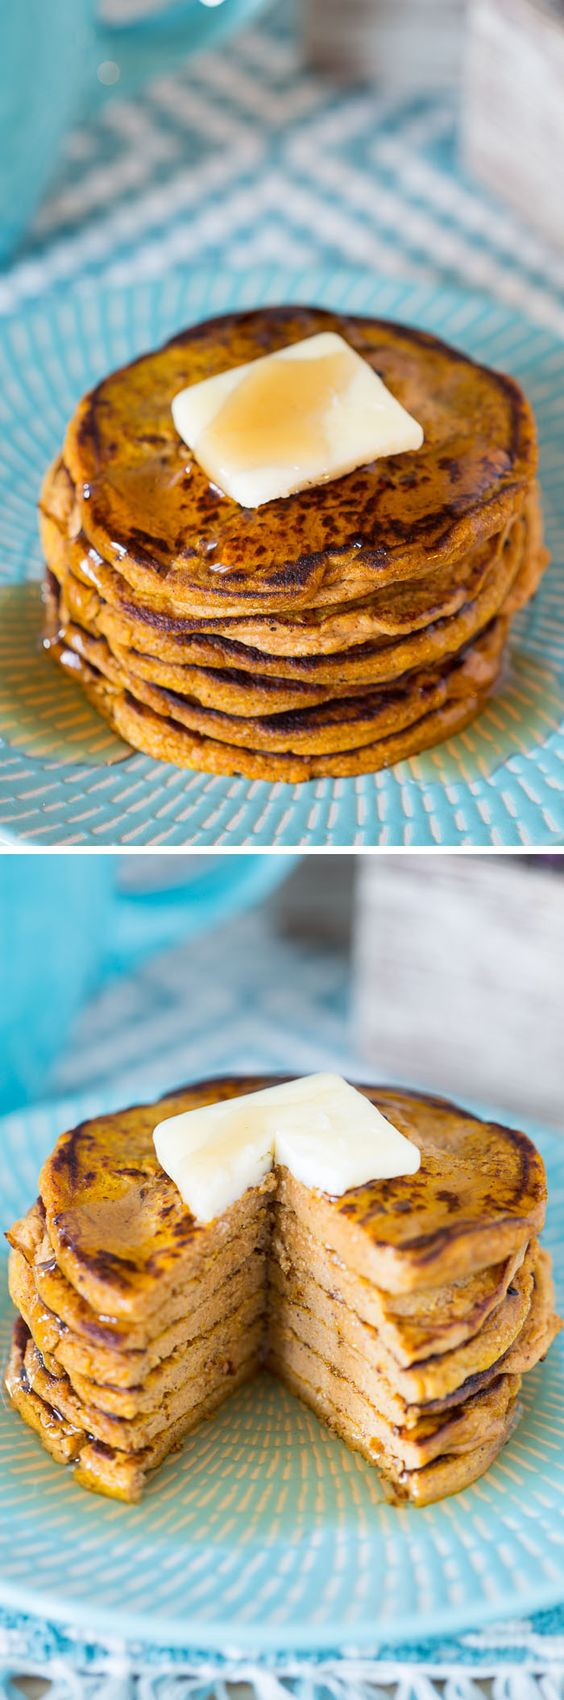 You can make these Five-Ingredient Pumpkin Protein Pancakes with just two ingredients, but I added a couple for good measure, including protein powder!